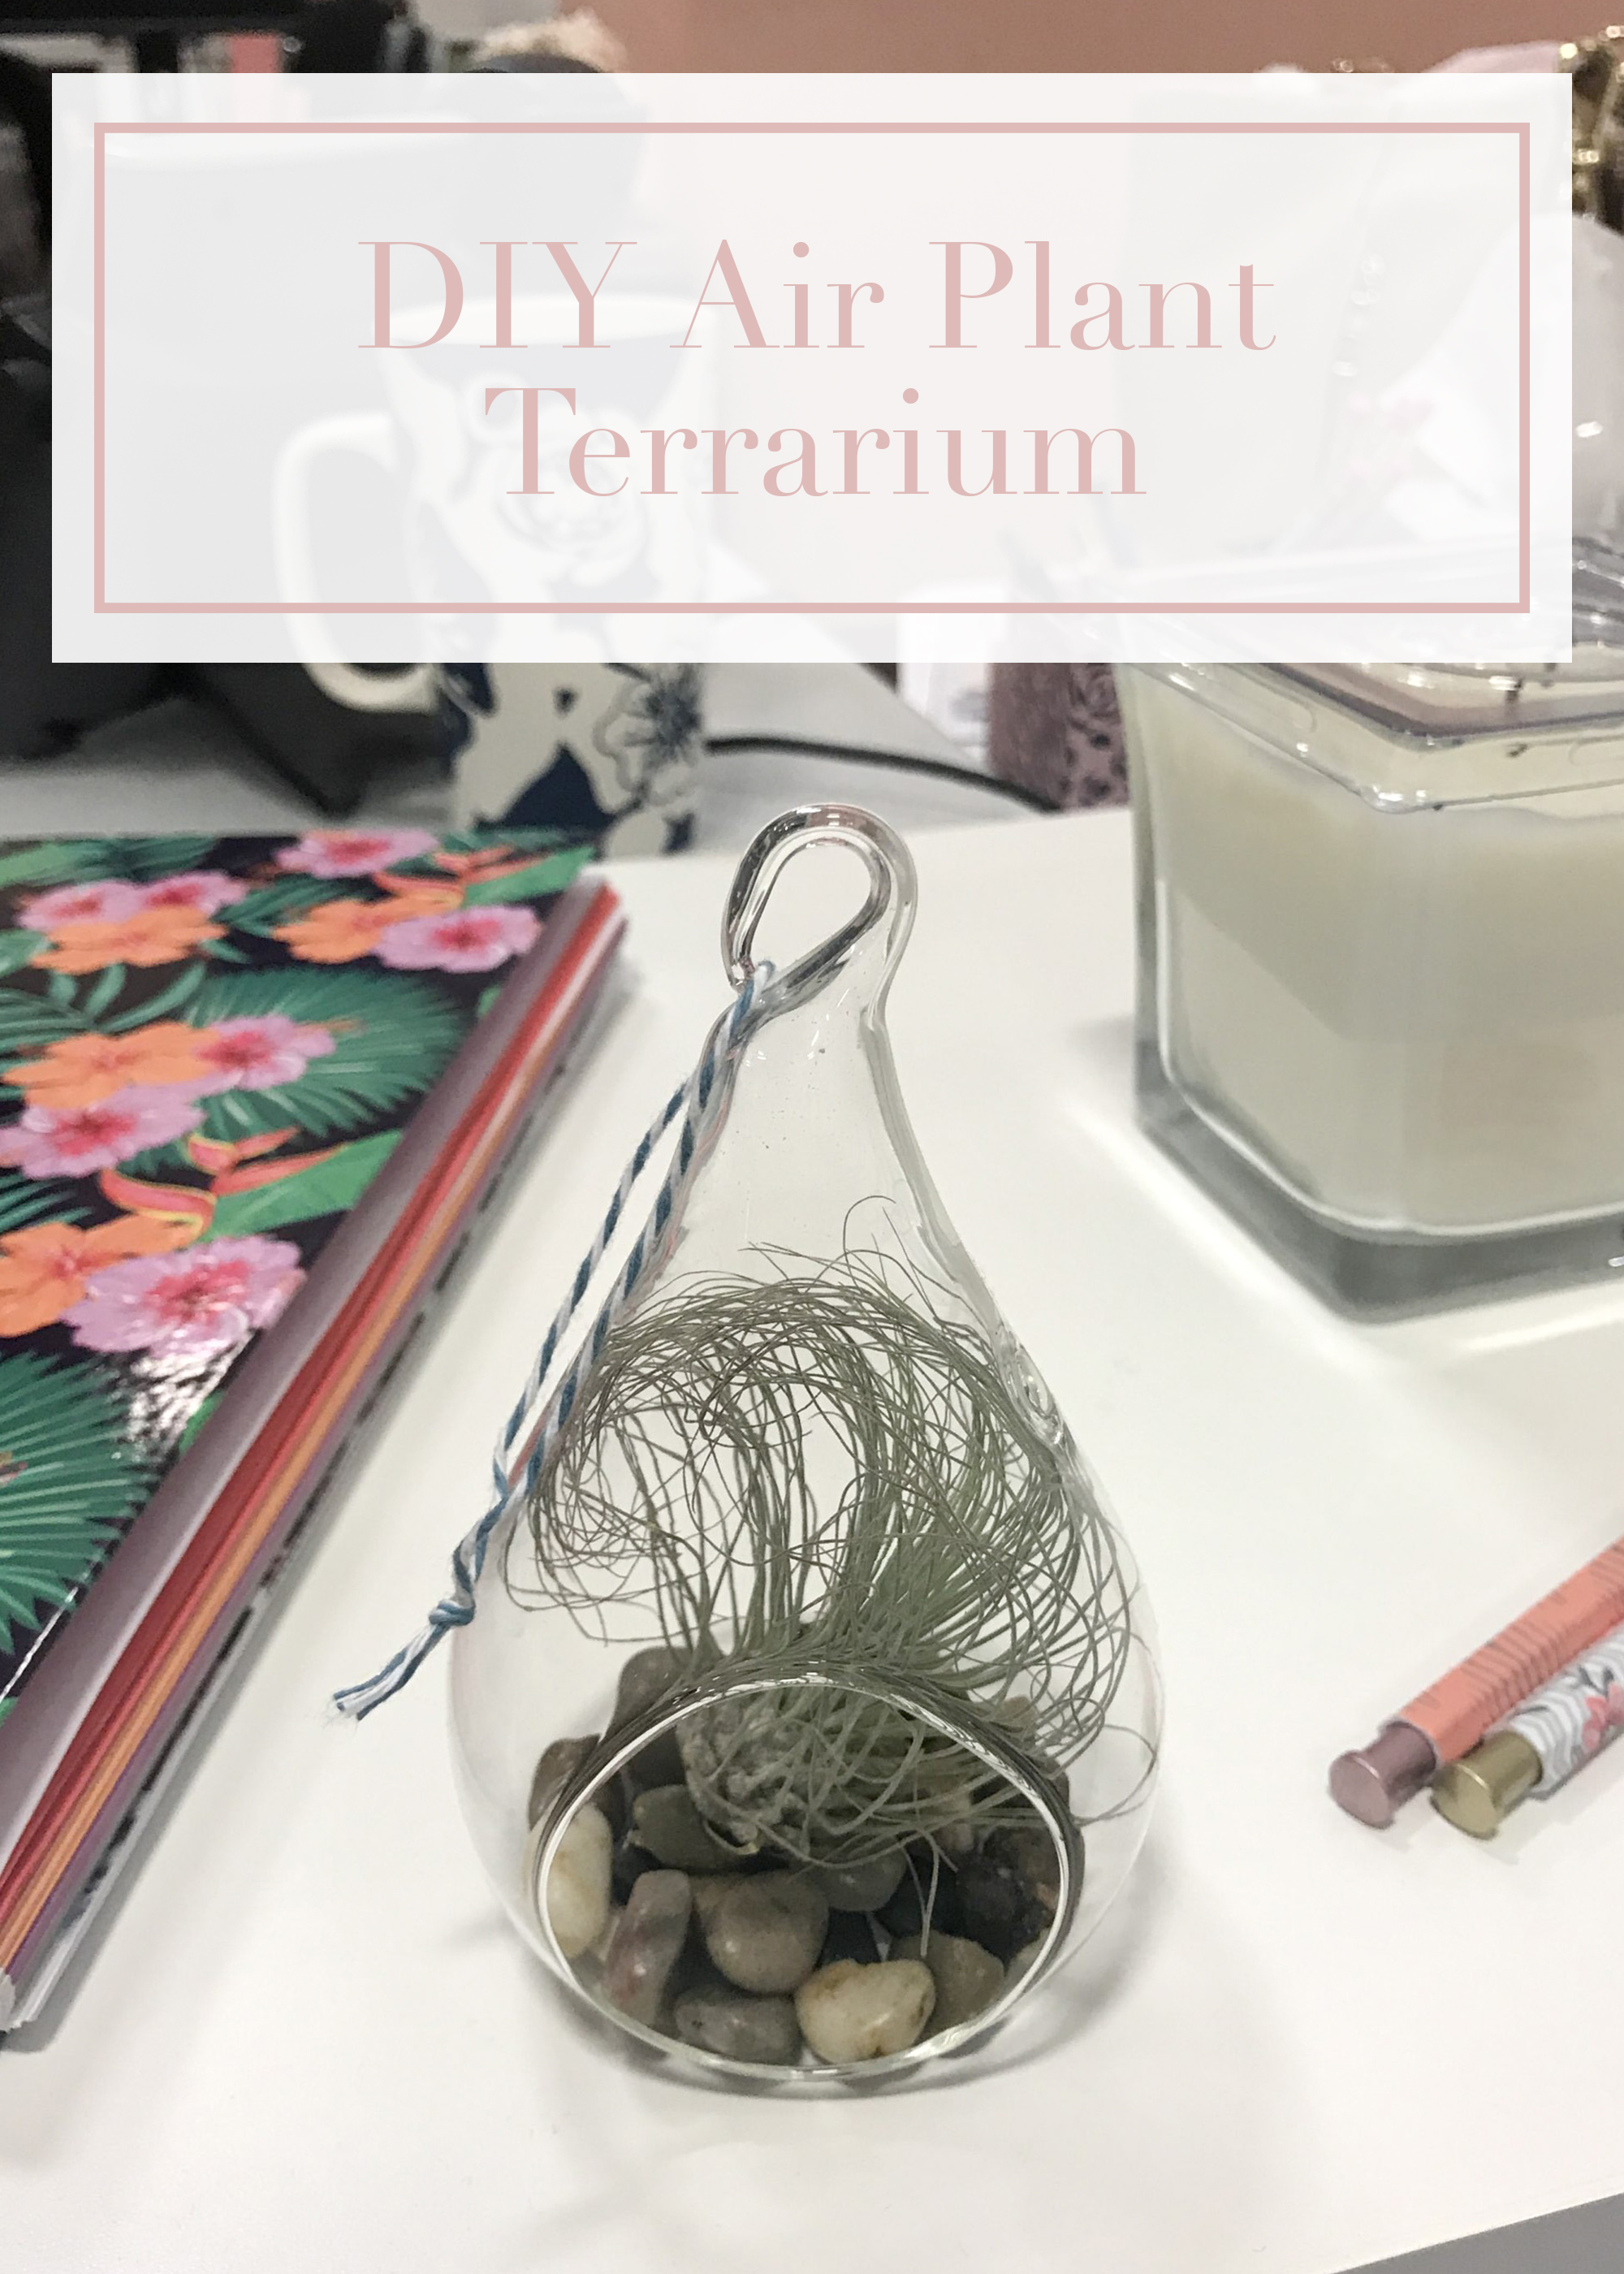 Diy Air Plant Terrarium To Brighten Your Office Desk Likely By Sea